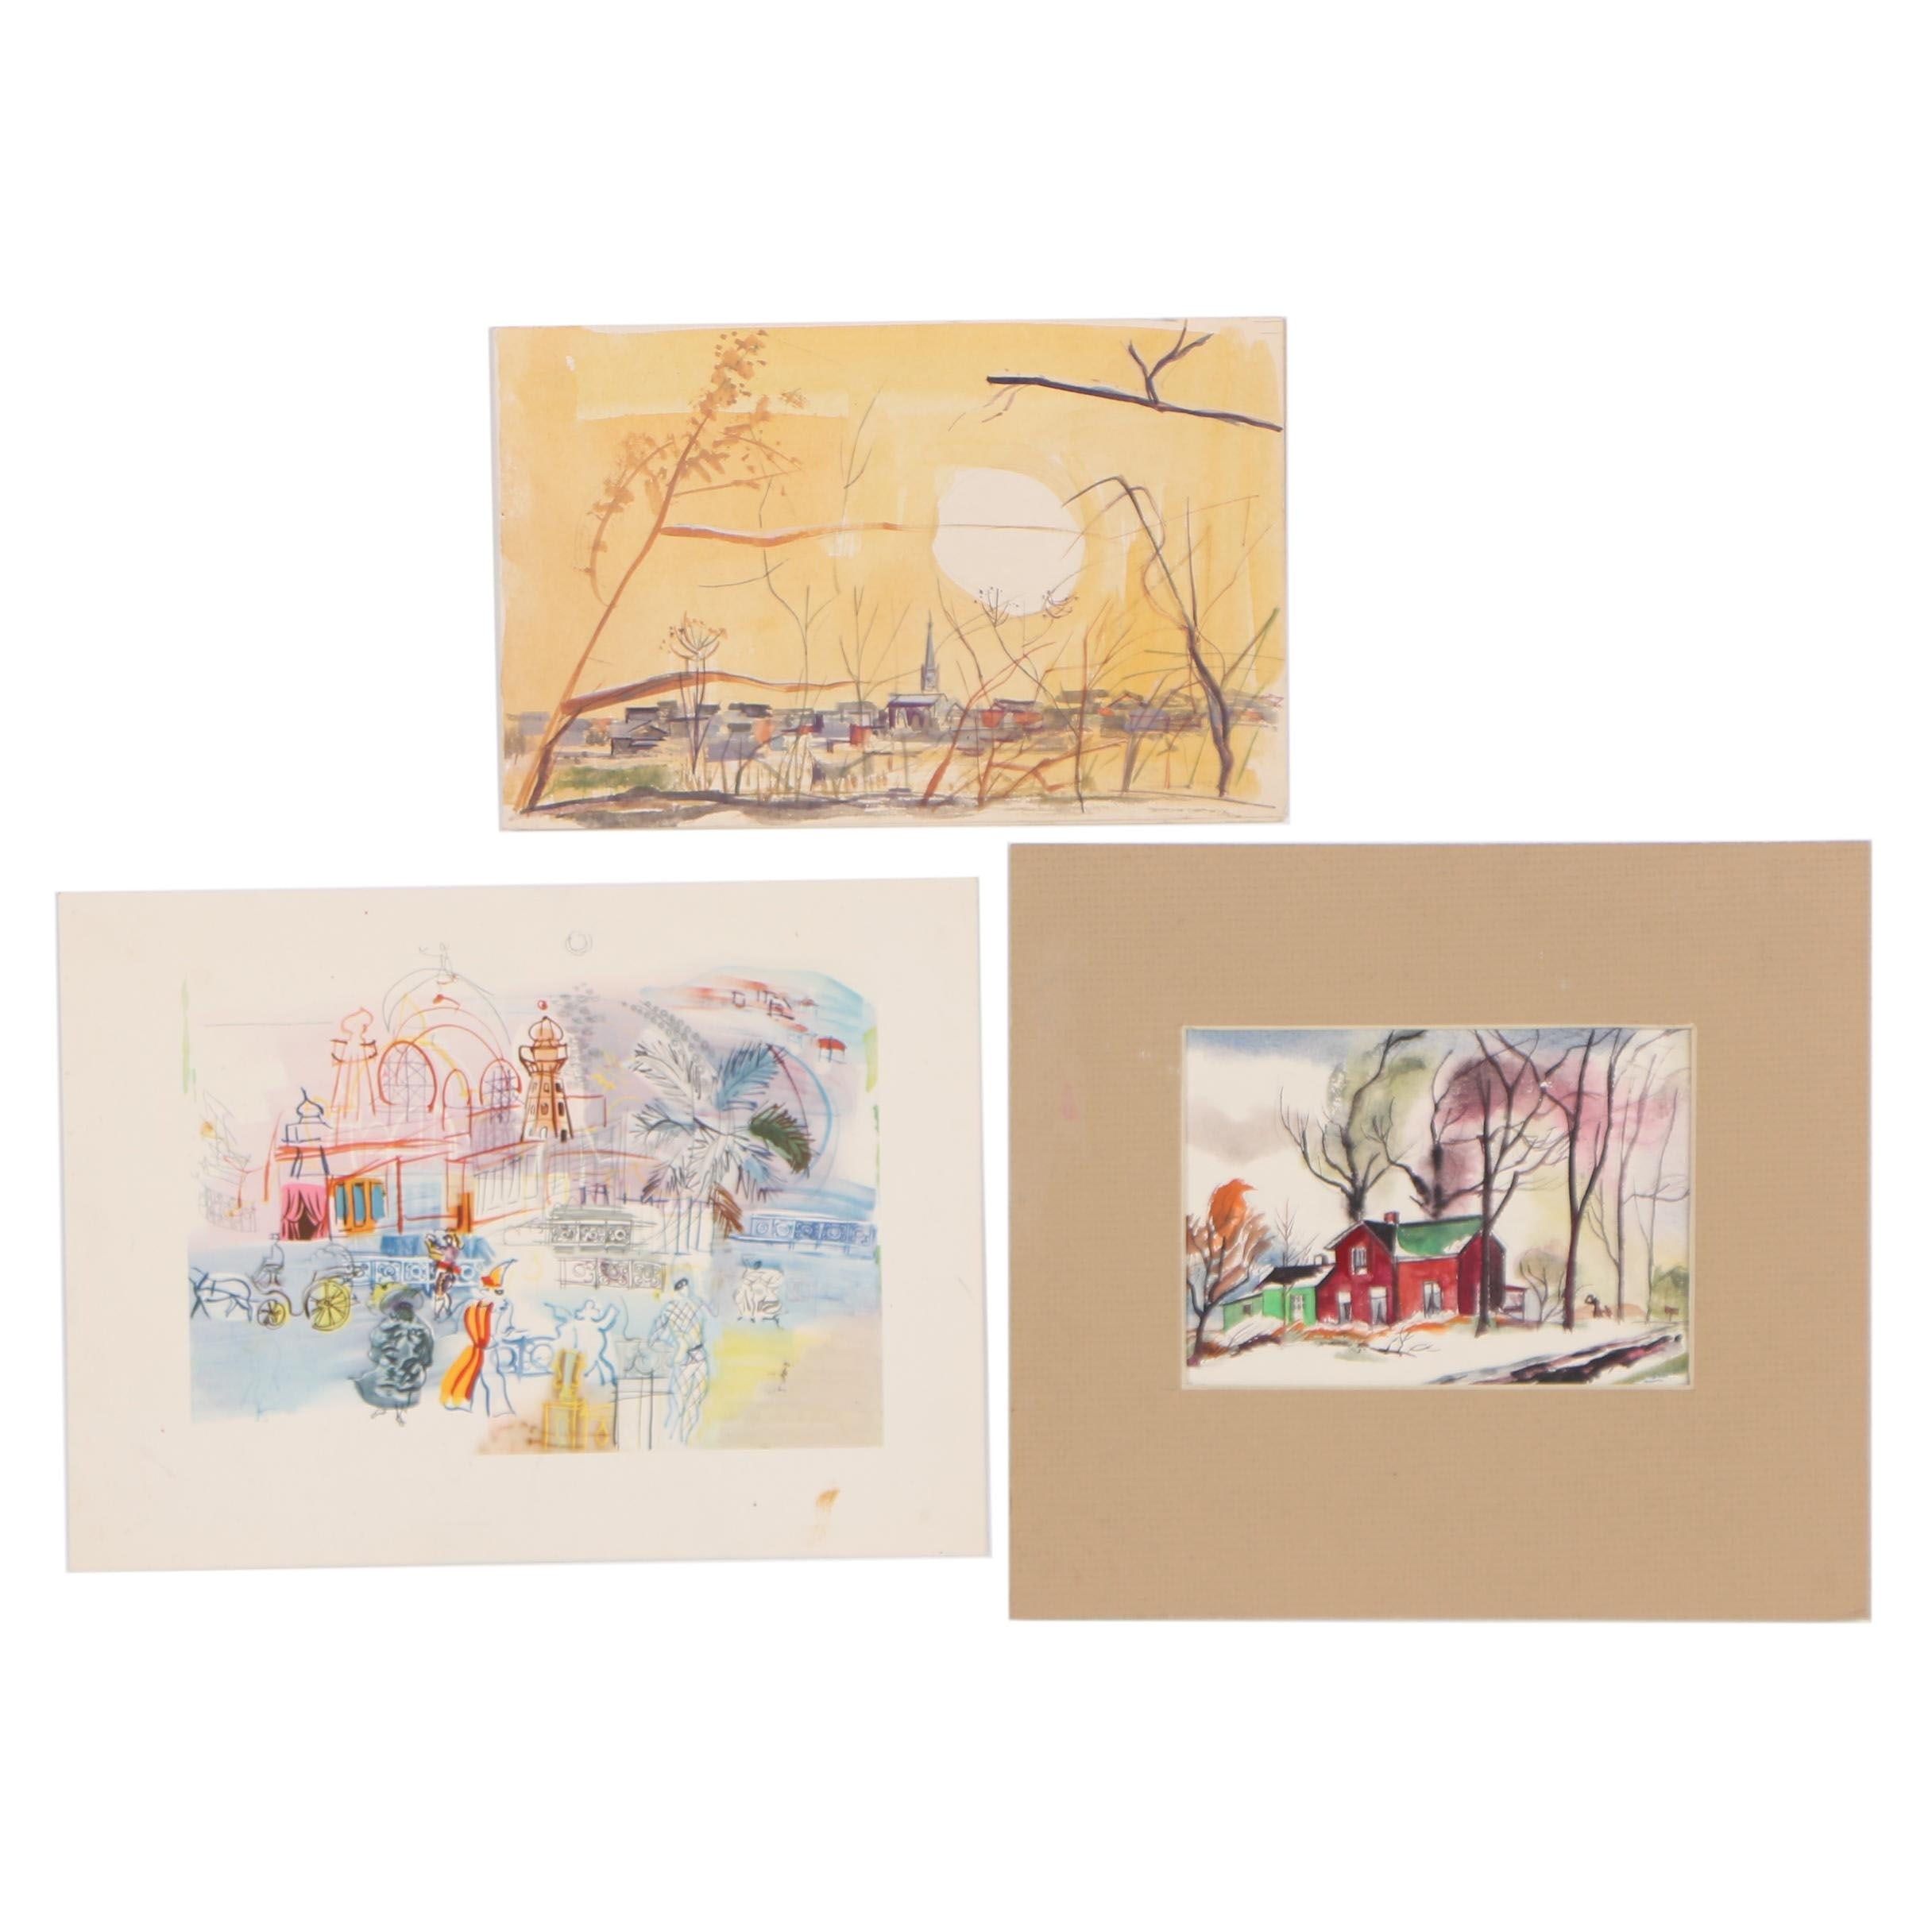 Cathal Brendan O'Toole Watercolor Paintings and Offset Lithograph